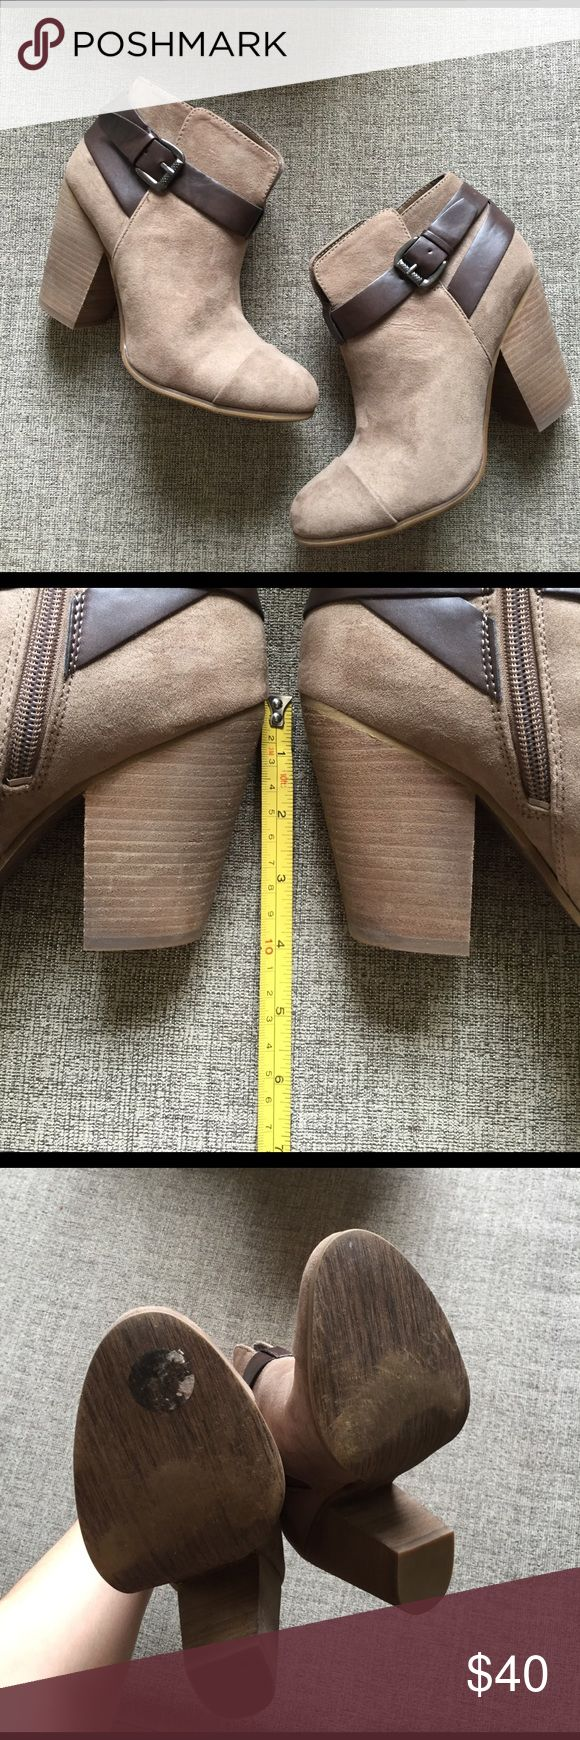 Booties Size 7. I have the original box. Only wore twice. Comfortable and stylish. Carlos Santana Shoes Ankle Boots & Booties